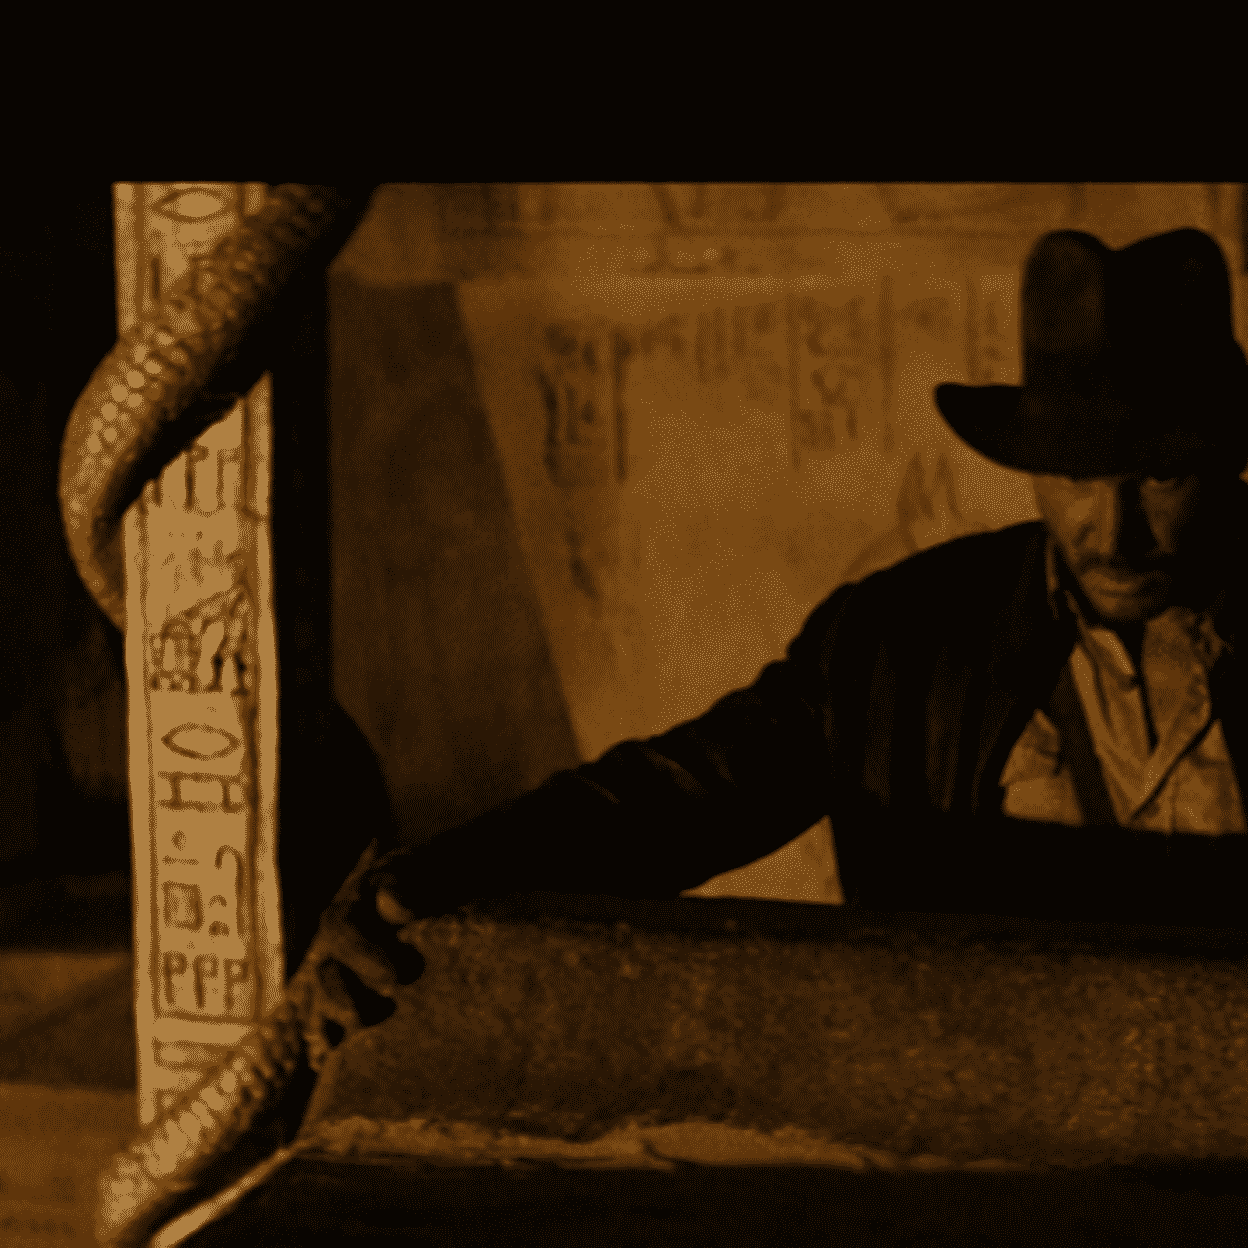 r2d2 3cpo indiana jones 1 e1571923355907 12 Things You Didn't Know About Raiders of the Lost Ark